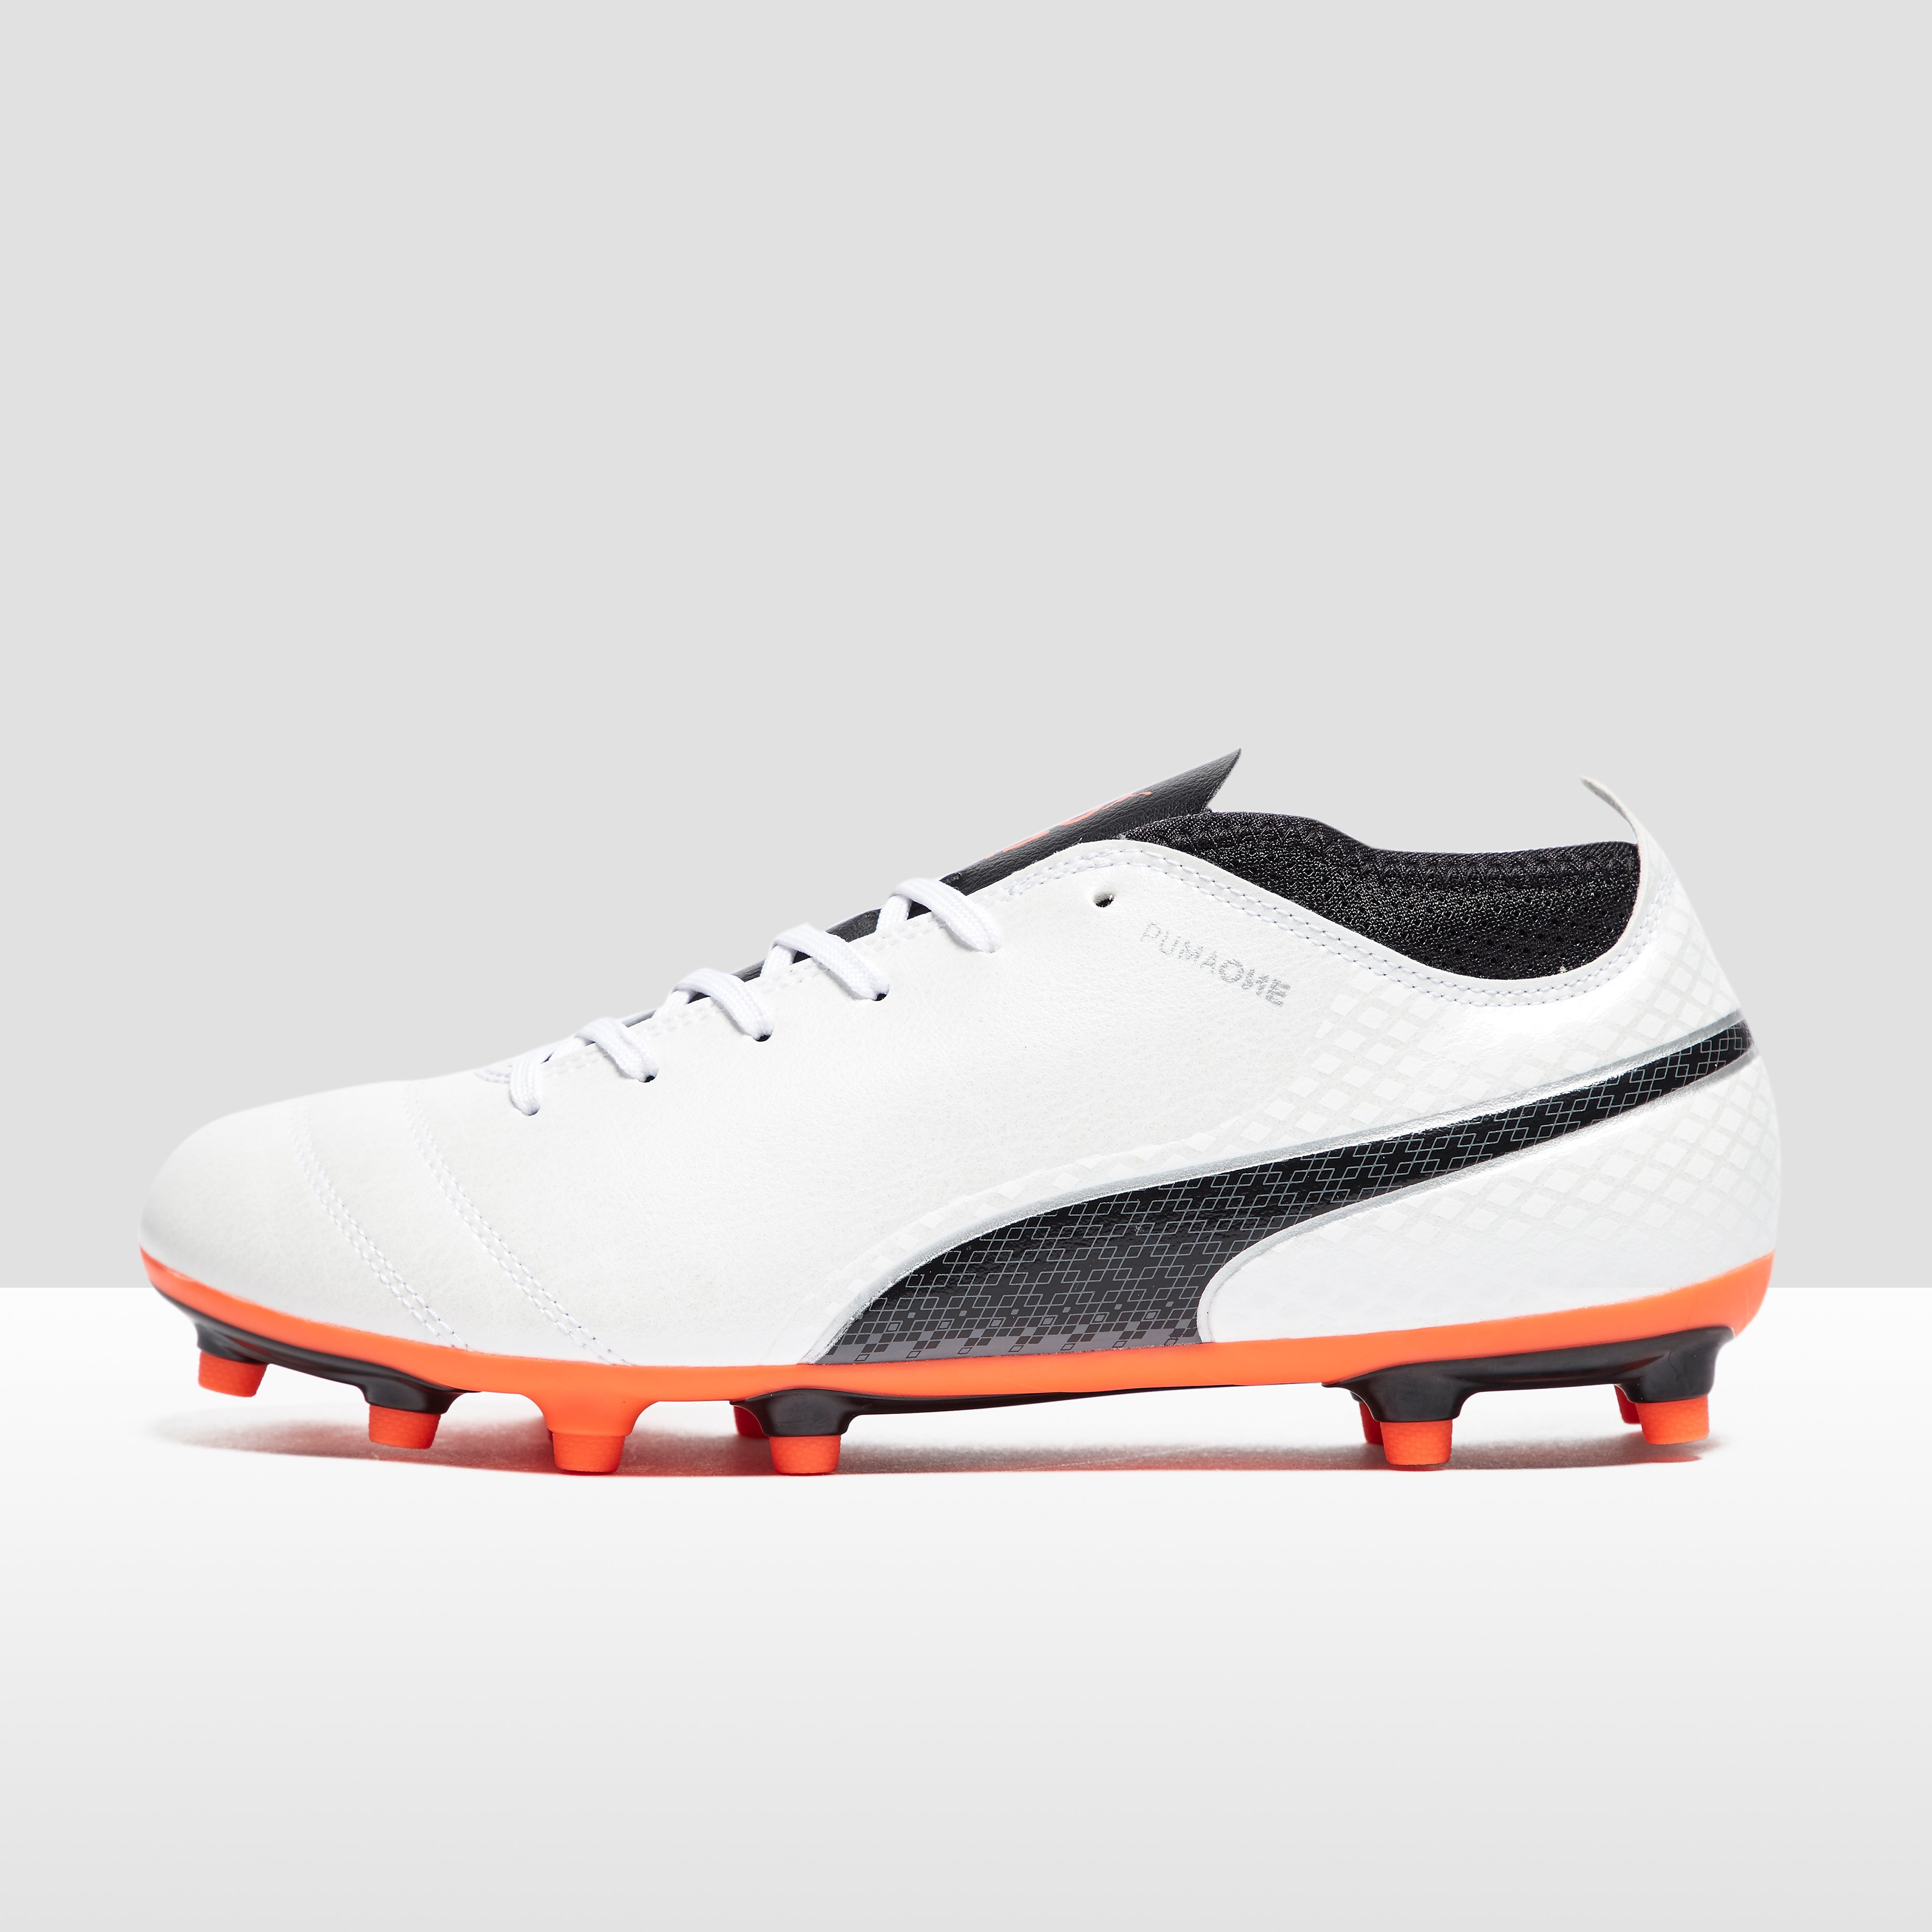 PUMA One 17.4 FG Men's Football Boots